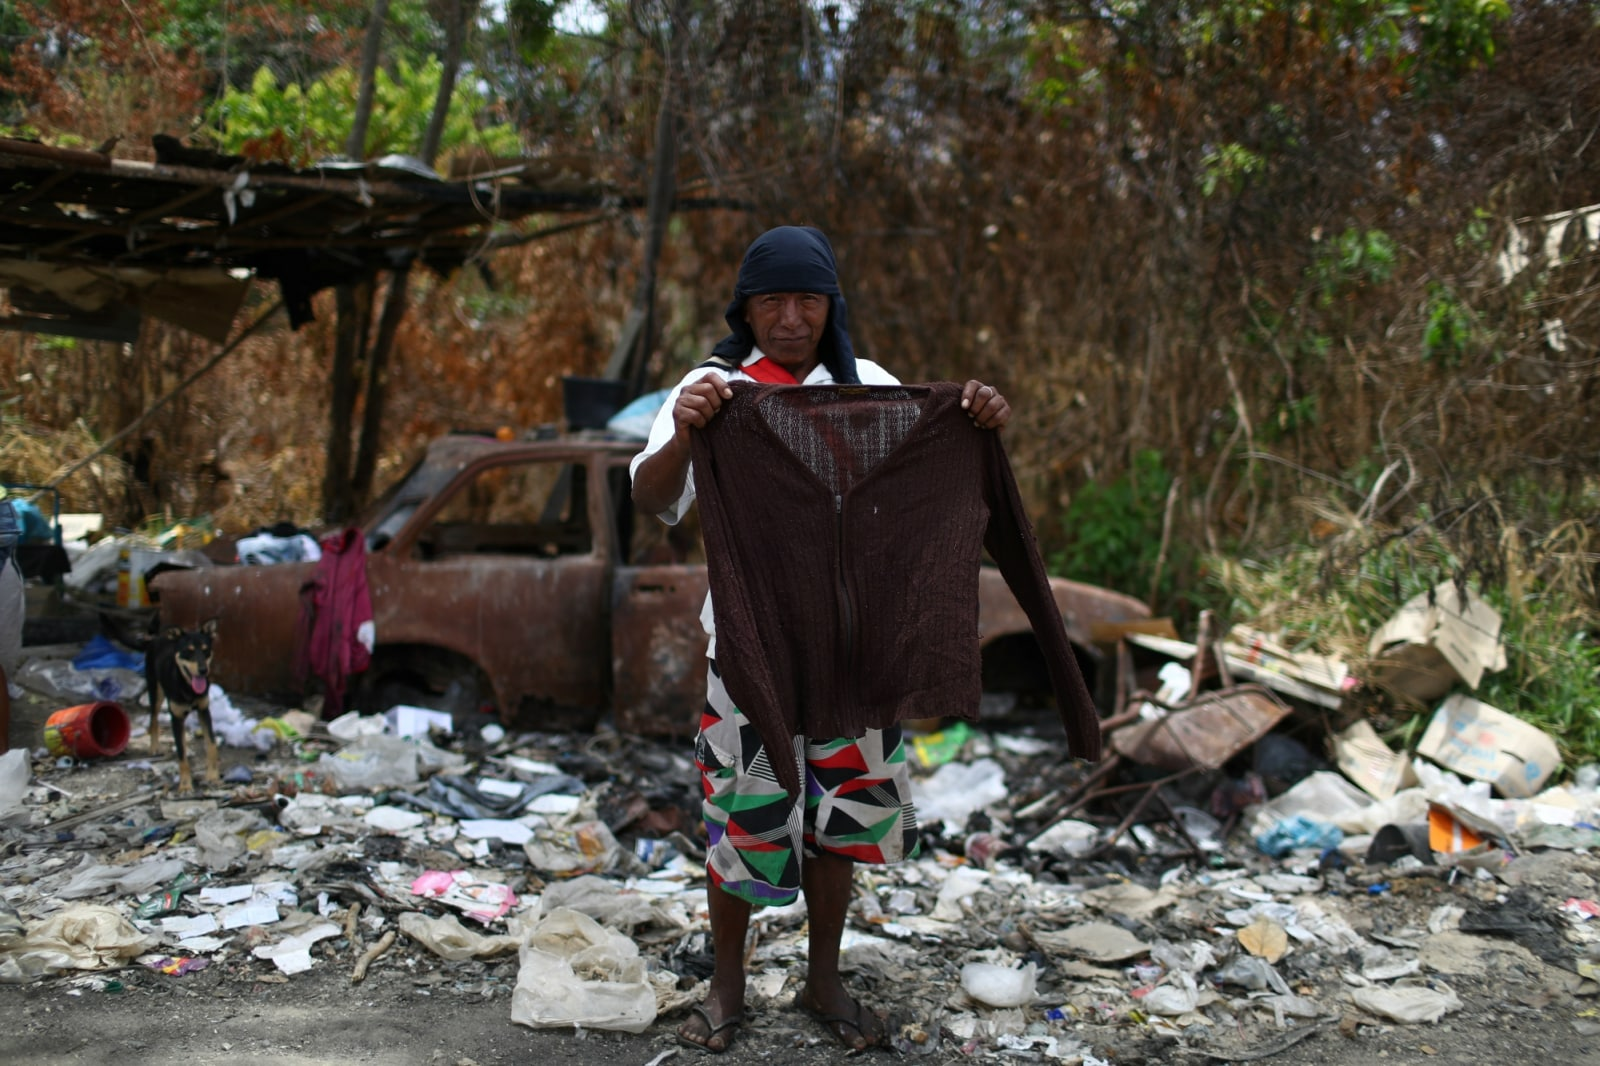 Venezuelan Euclide Mata holds a sweater after scraping on a garbage dump in the border city of Pacaraima, Brazil April 15, 2019. REUTERS/Pilar Olivares